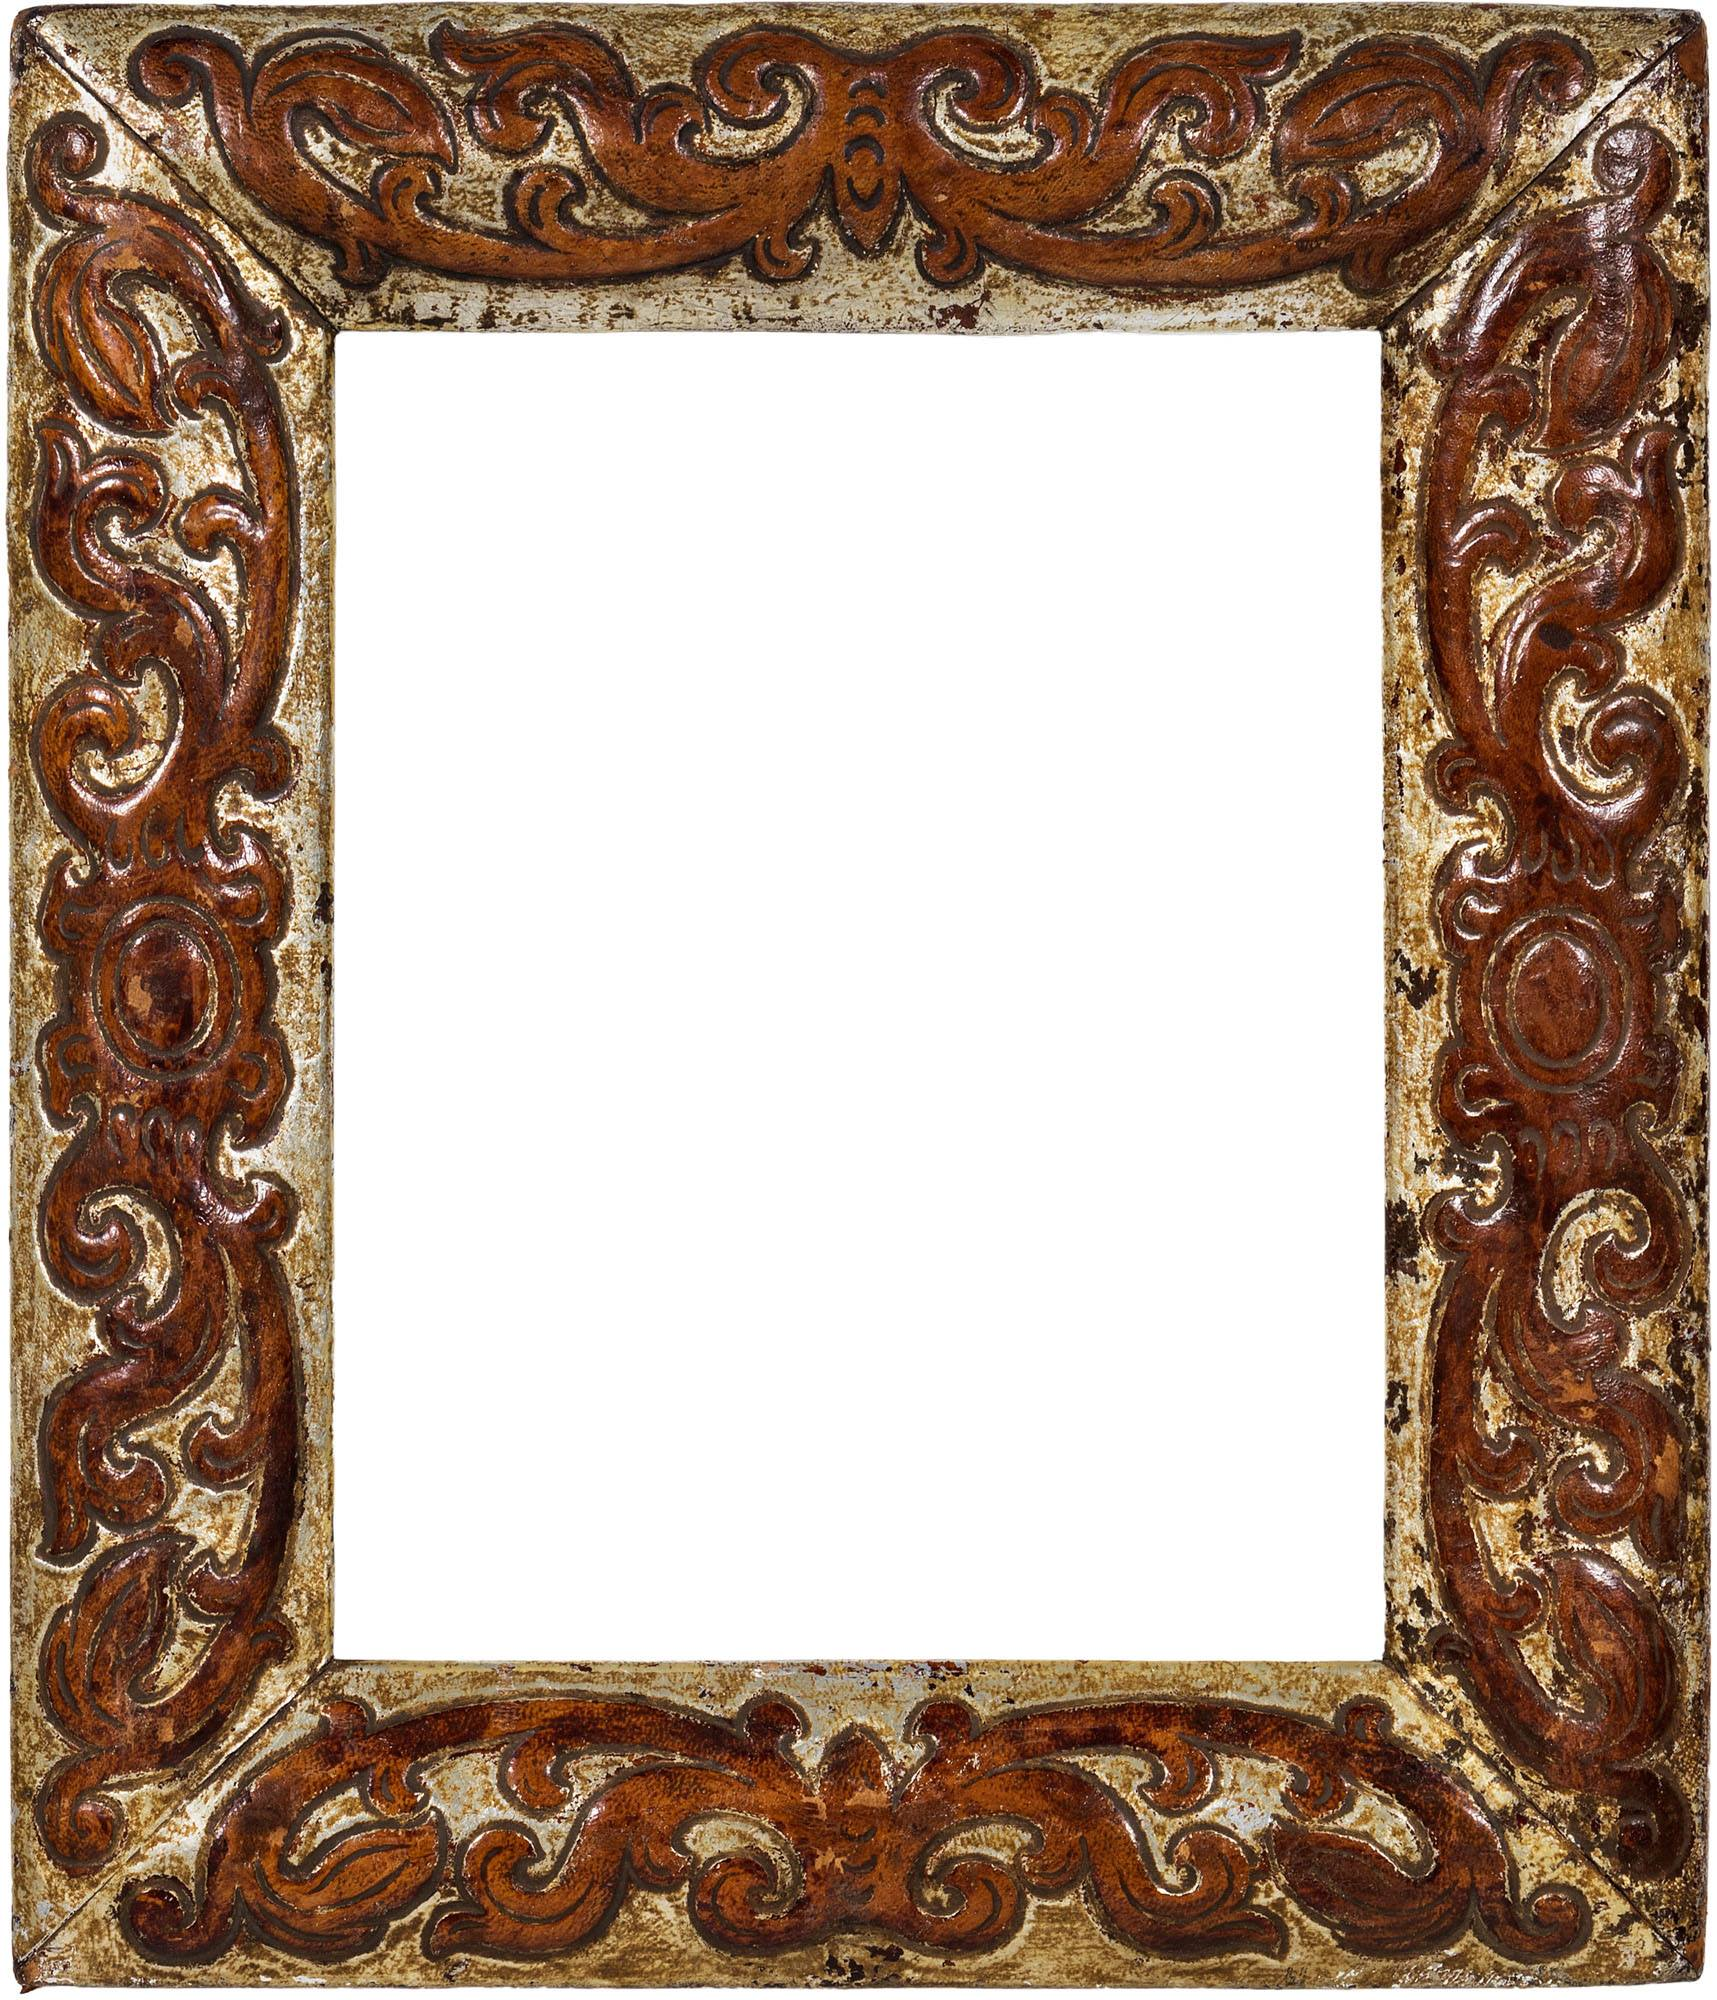 Norbert Theiss\'s frame exhibition and Conzen 15th Antique Frame ...